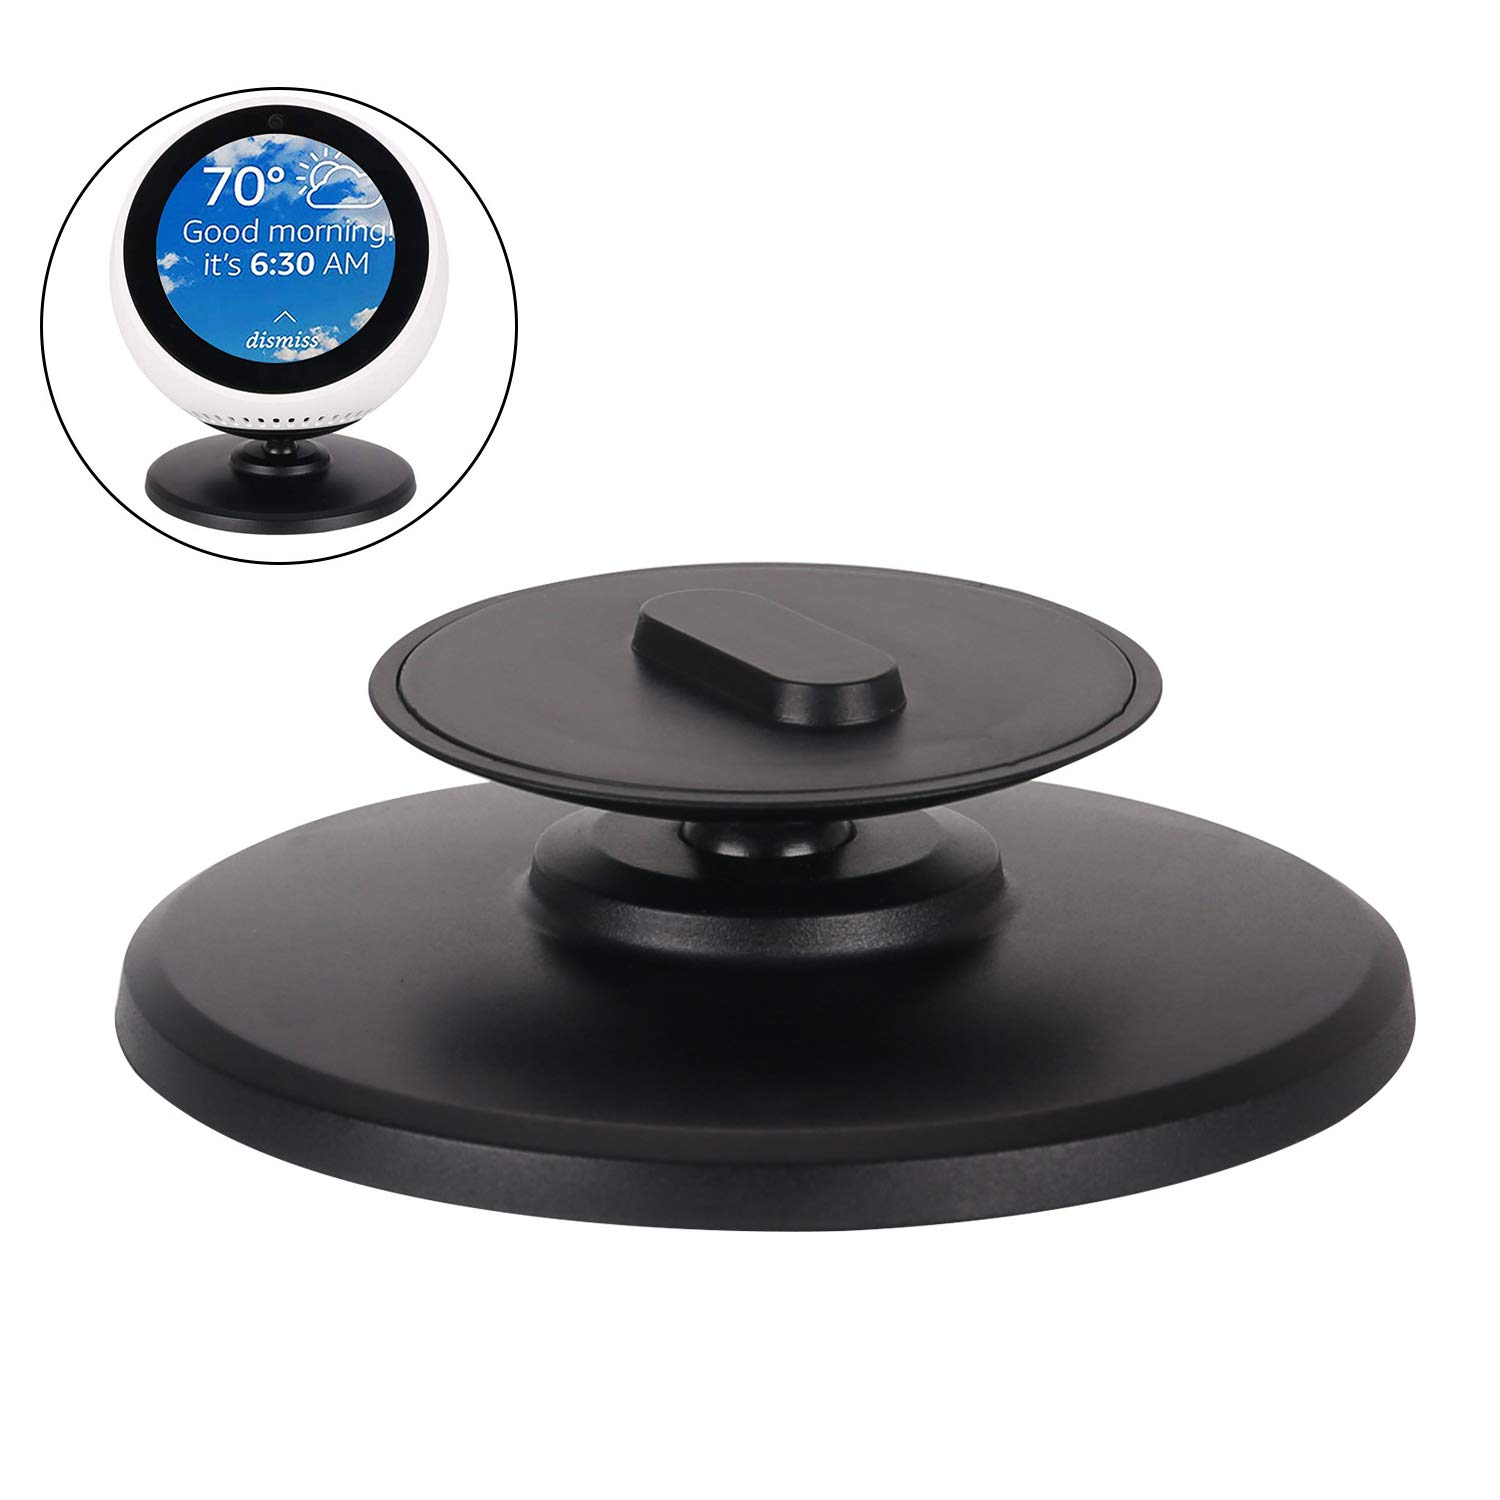 Beuya Echo Spot Adjustable Stand - Smart Speaker and Smart Alarm Clock with Alexa - Echo Spot Magnetic Base by Beuya